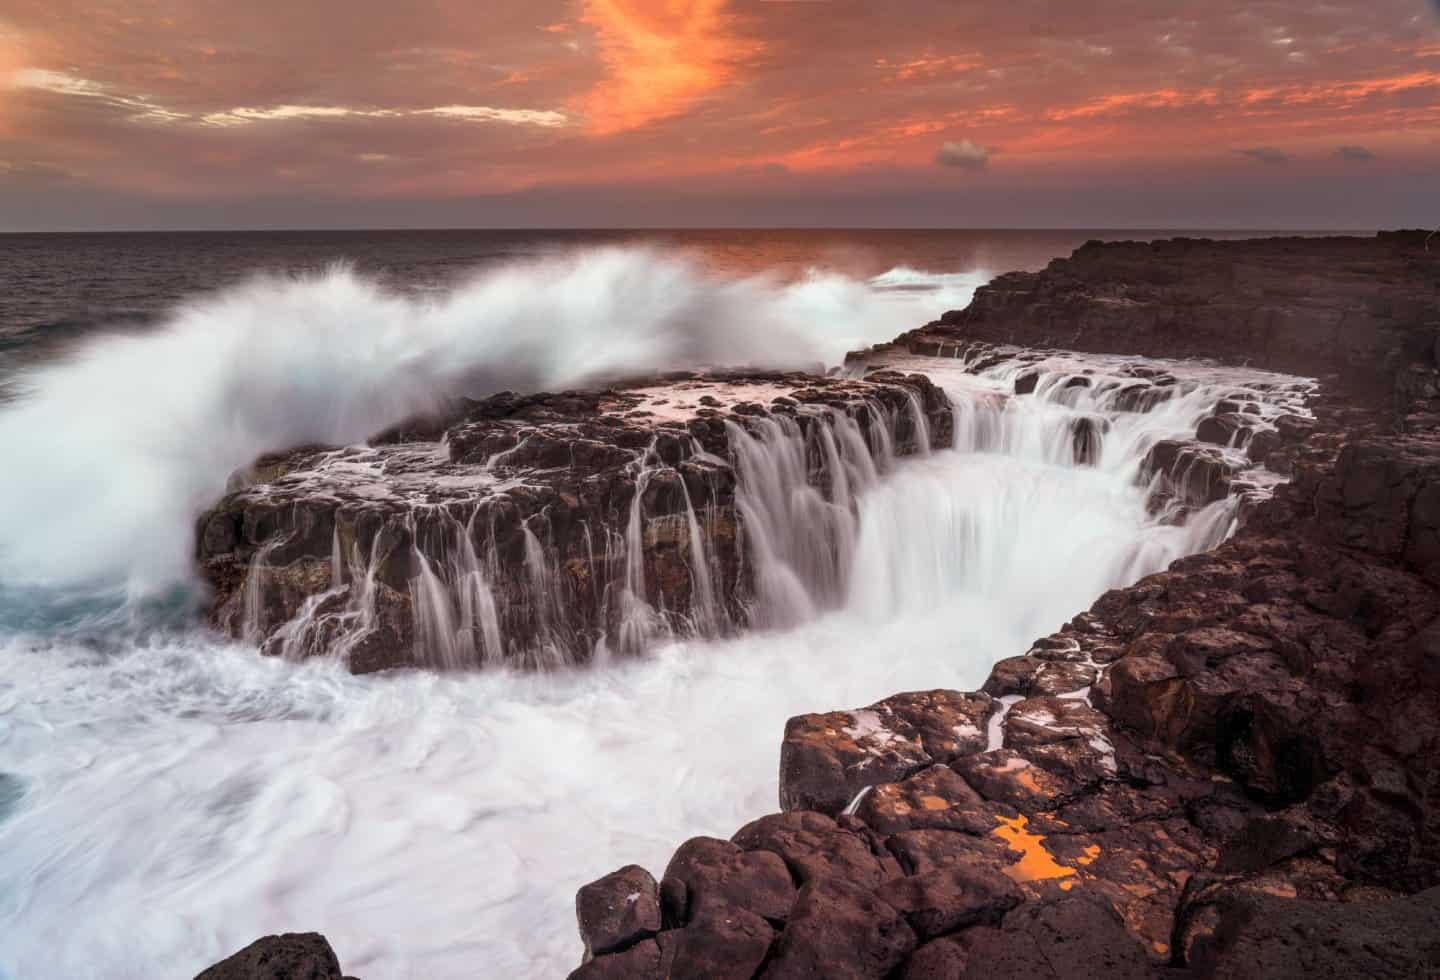 Amazing Kauai sunset photography at Queen's Bath on the north shore.